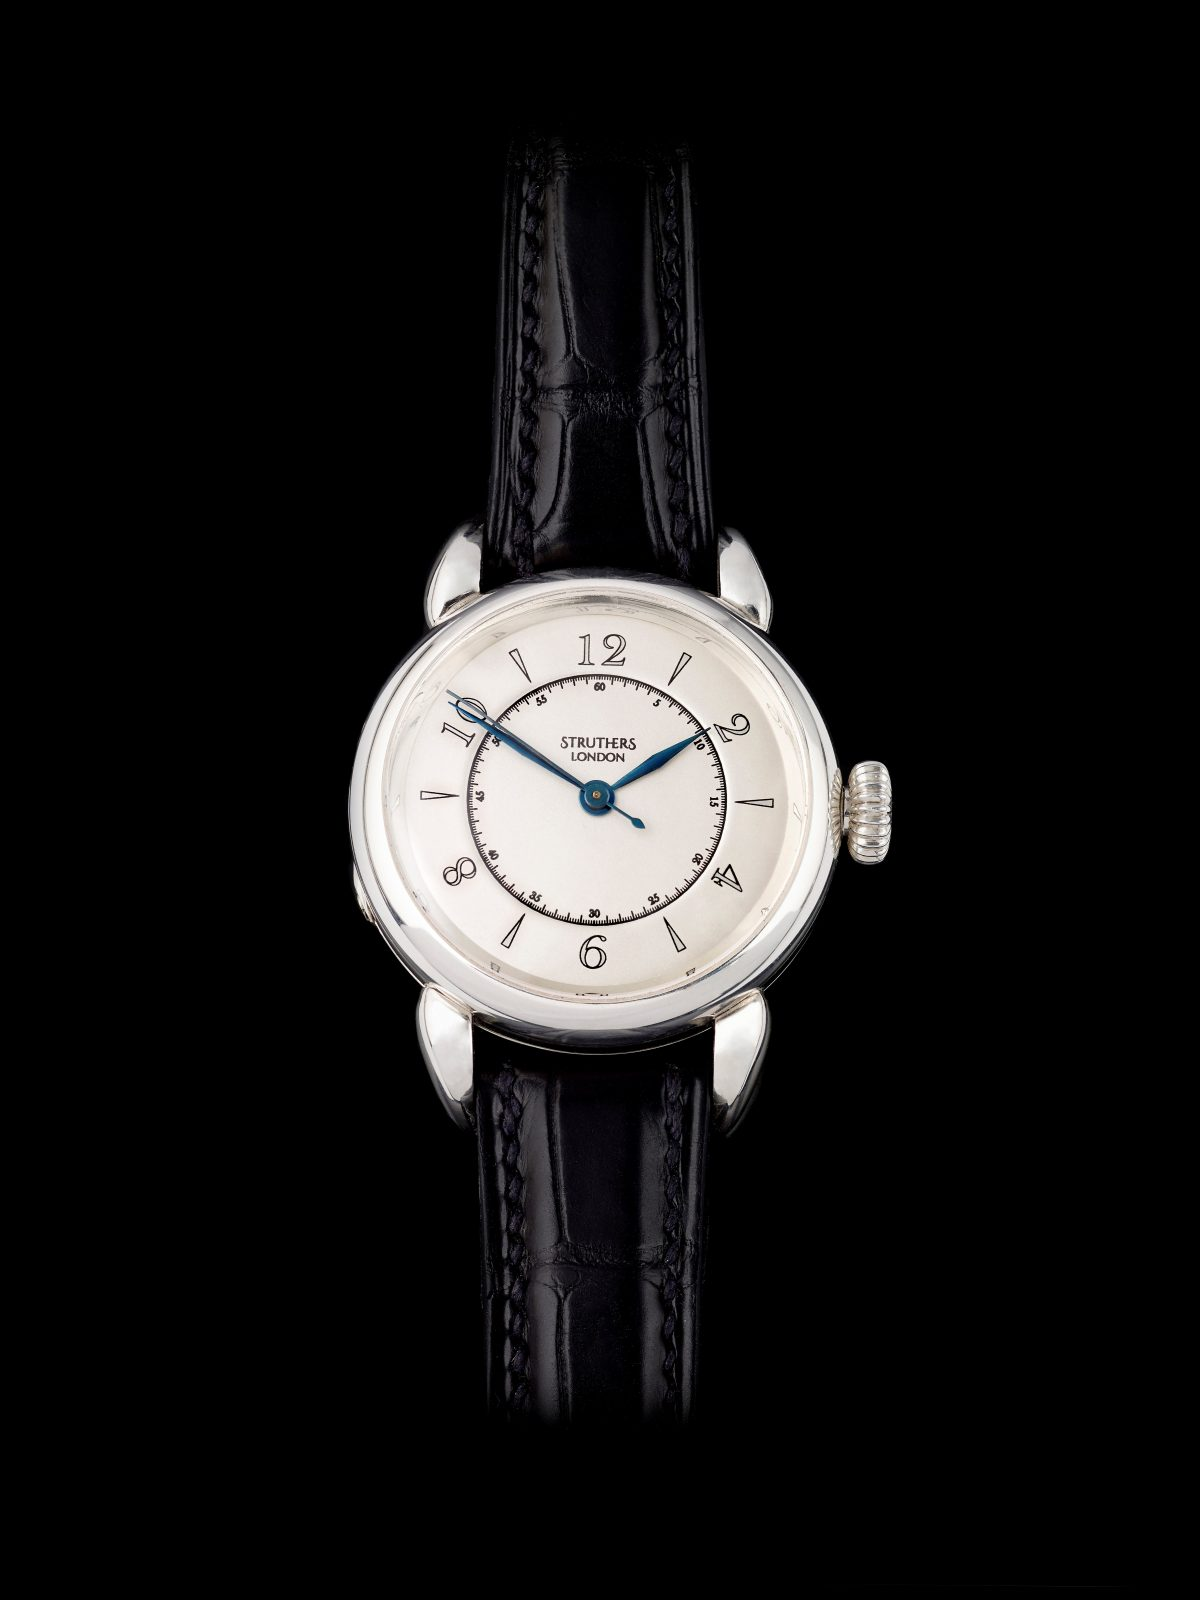 Struthers Watchmakes Traditional England